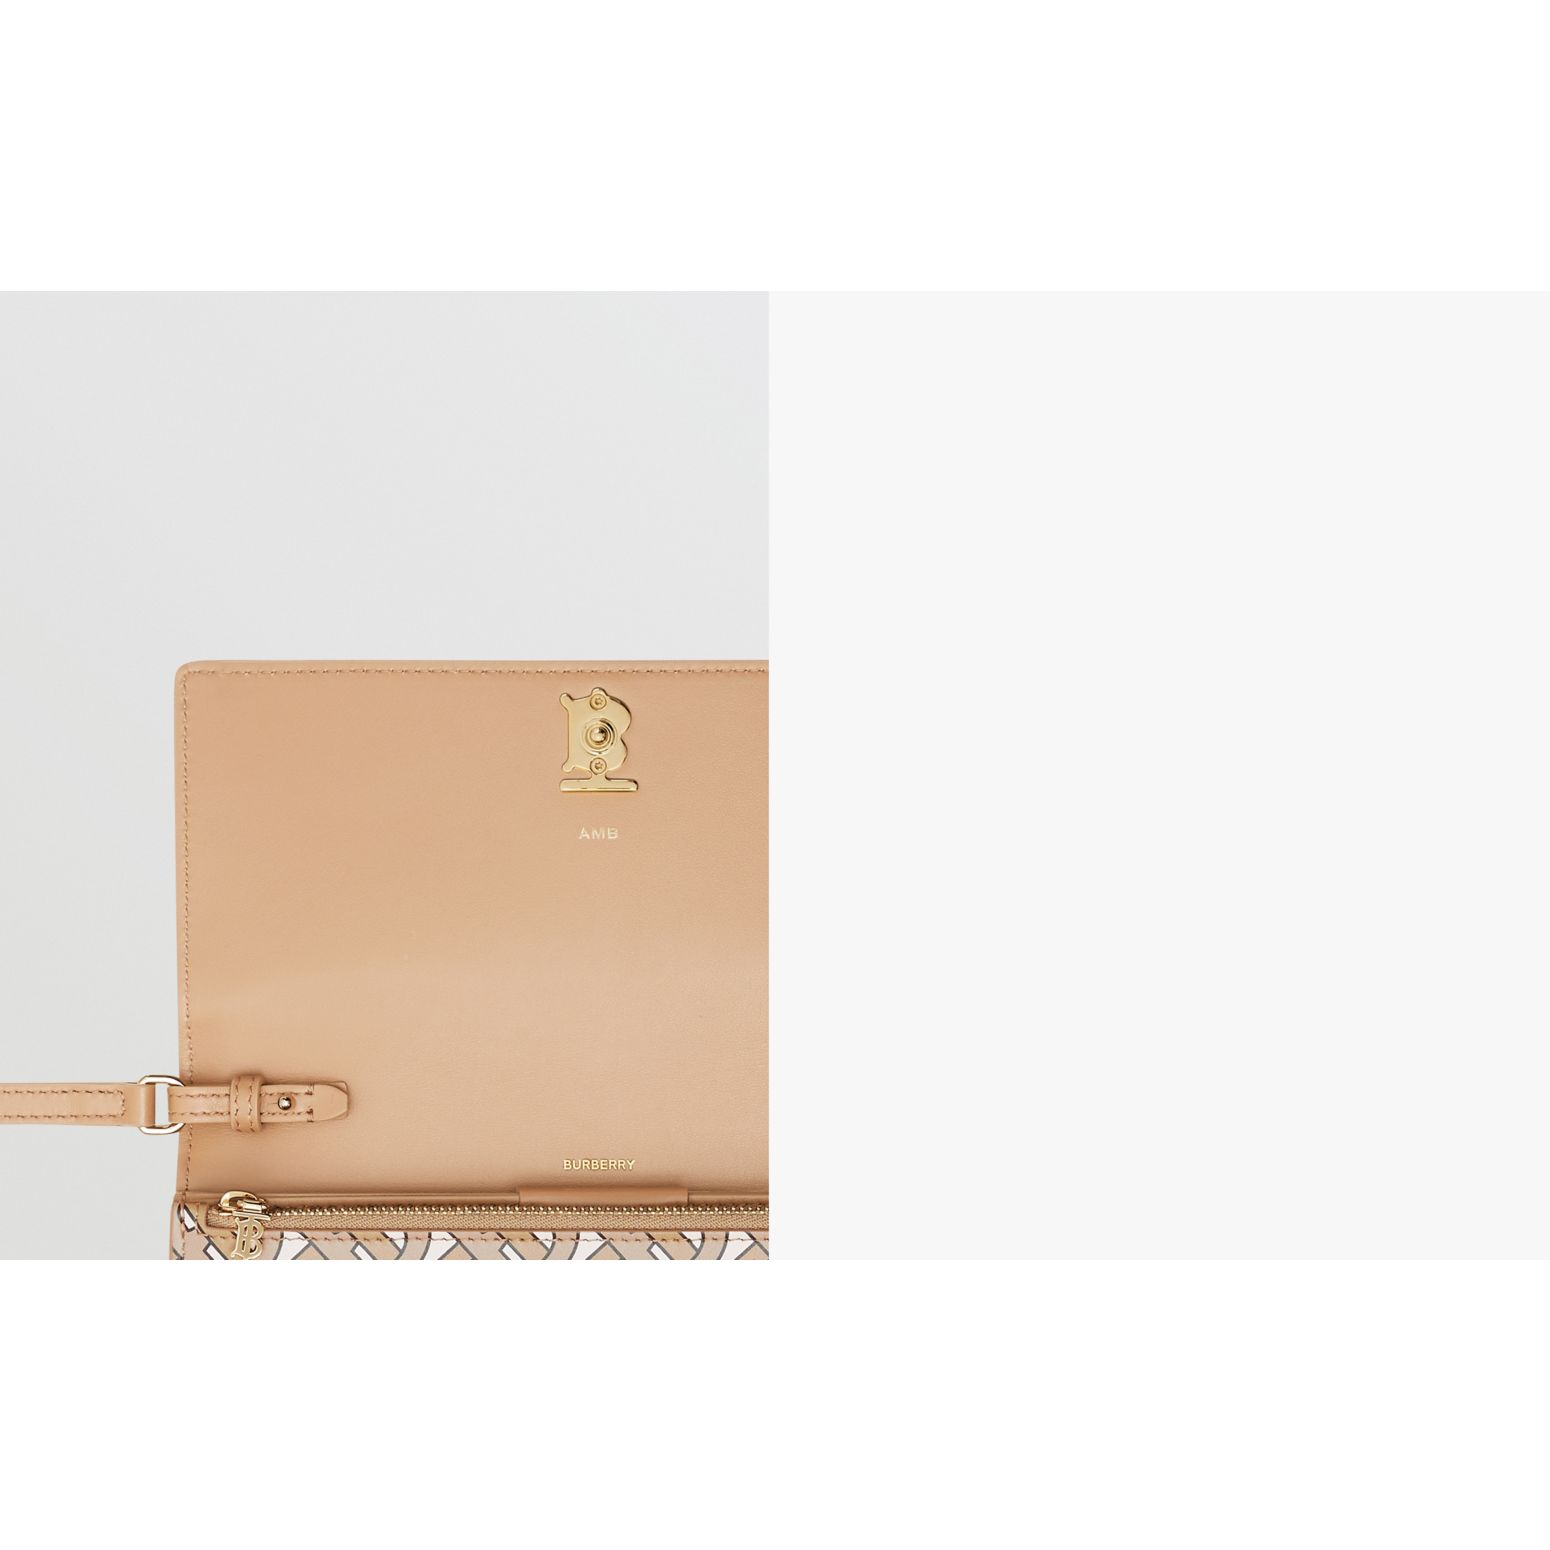 Portefeuille en cuir Monogram avec sangle amovible (Beige) - Femme | Burberry - photo de la galerie 1